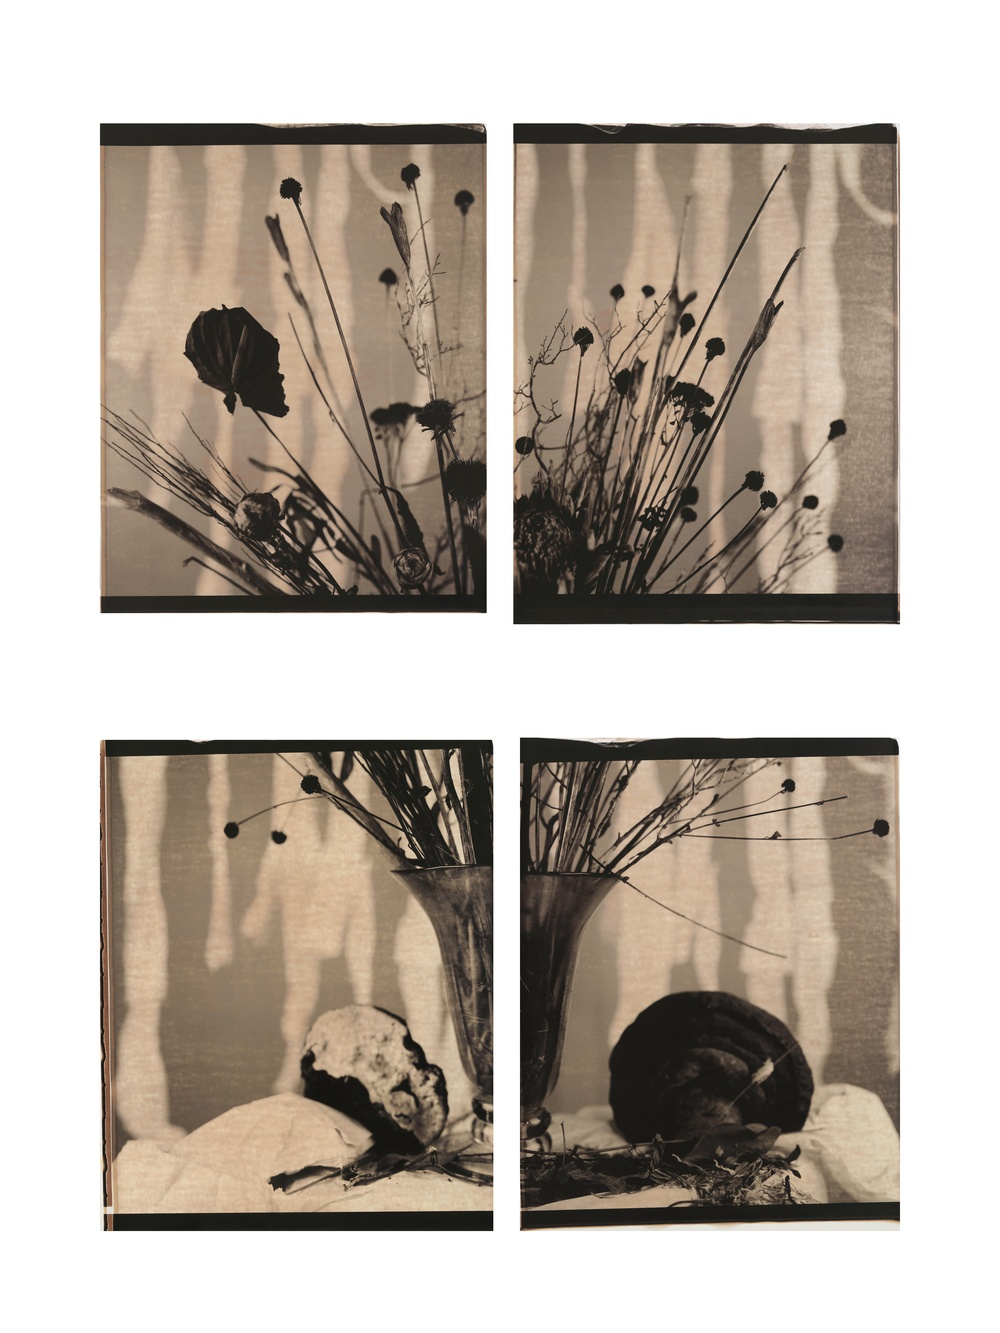 20. Mourning Bouquet.jpg